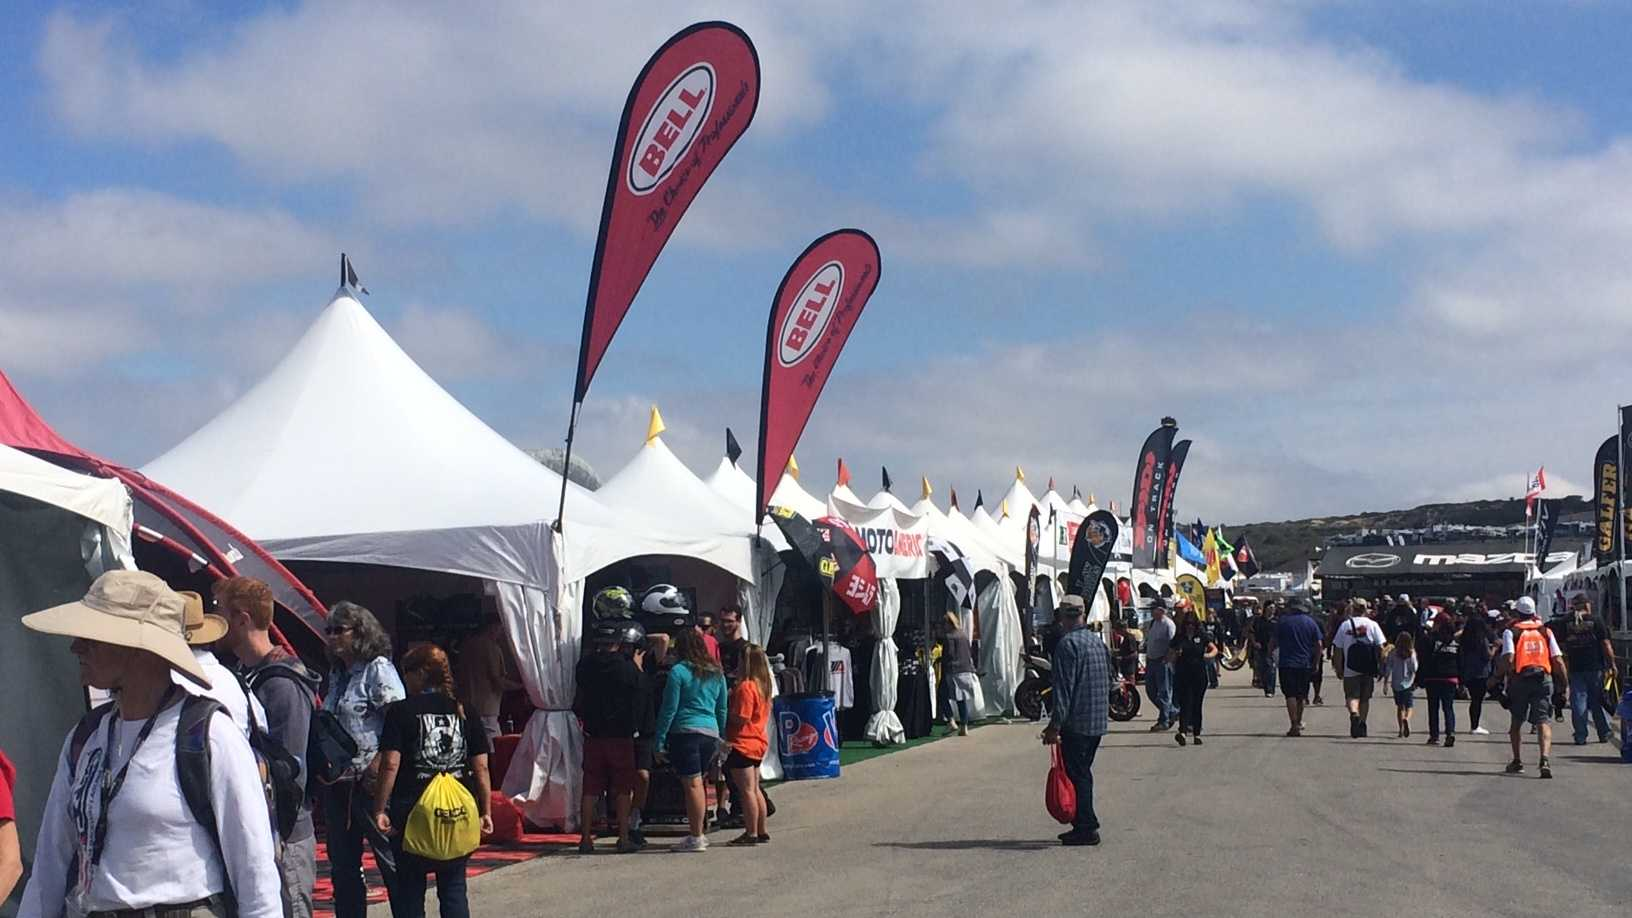 Thousands of motorcycle lovers flocked to Mazda Raceway Laguna Seca Saturday for the Superbike World Championship.